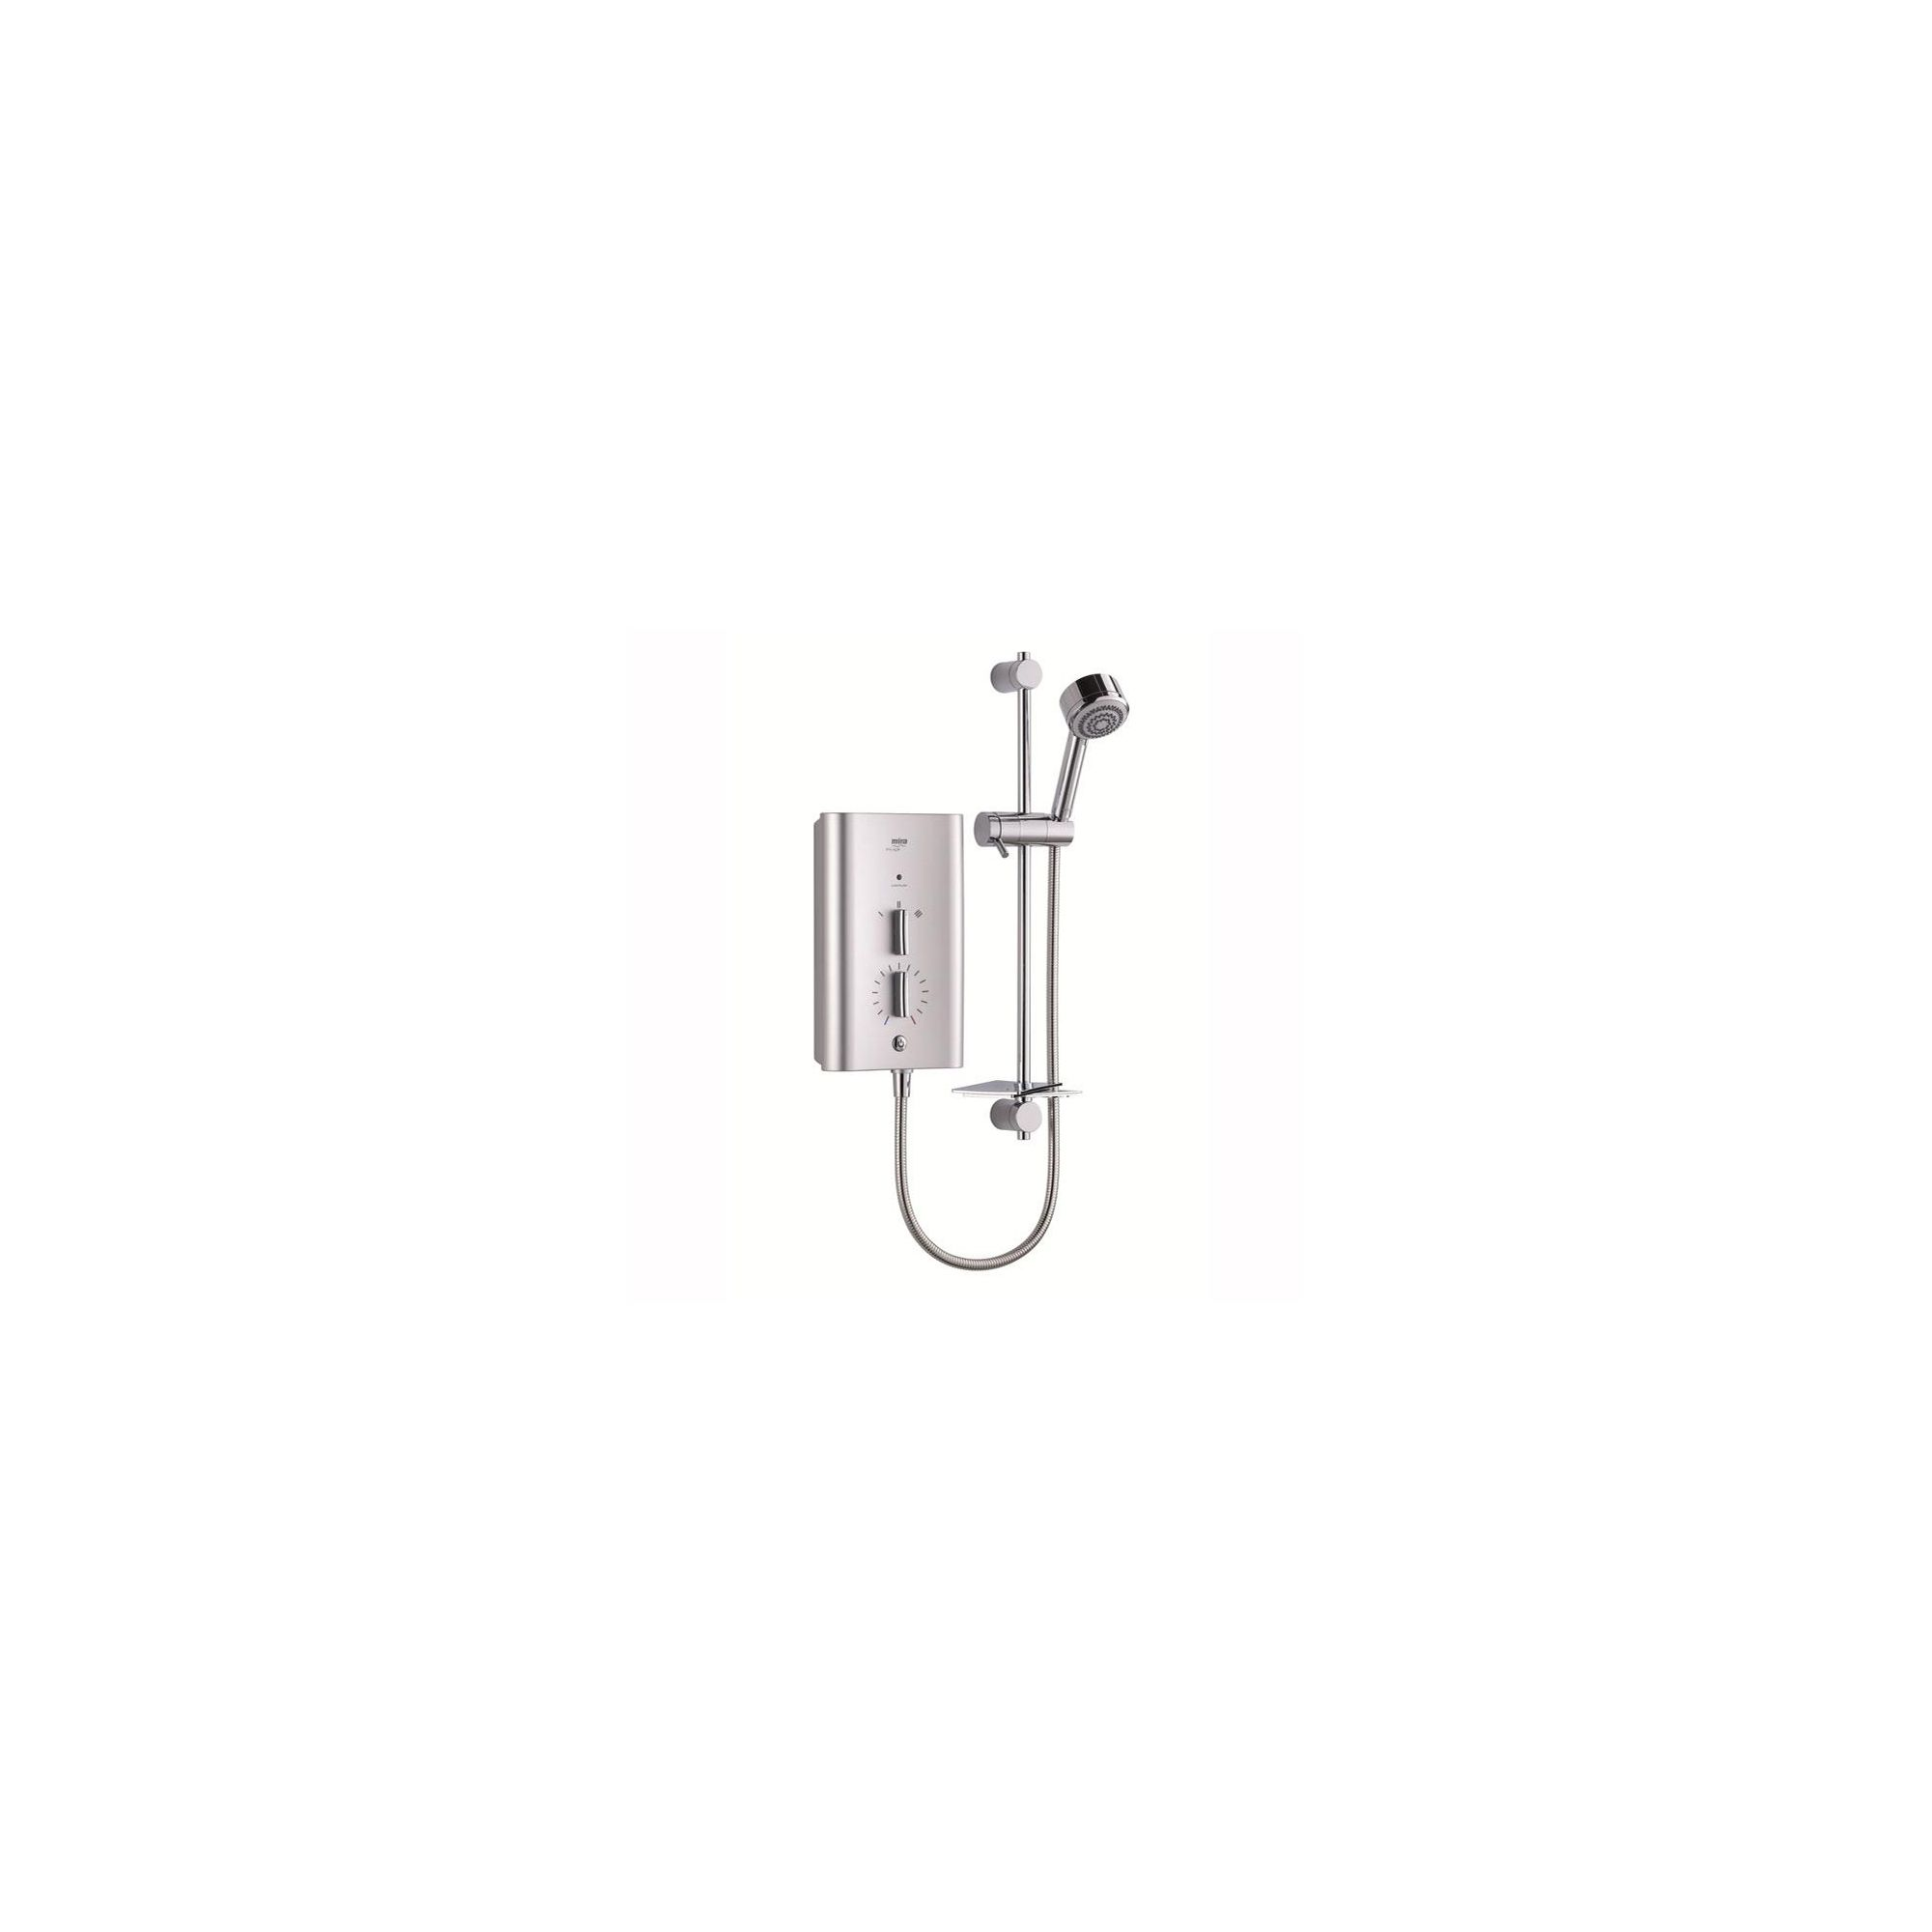 Mira Escape 9.0 kW Electric Shower with 4 Spray Handshower, Satin Chrome at Tesco Direct